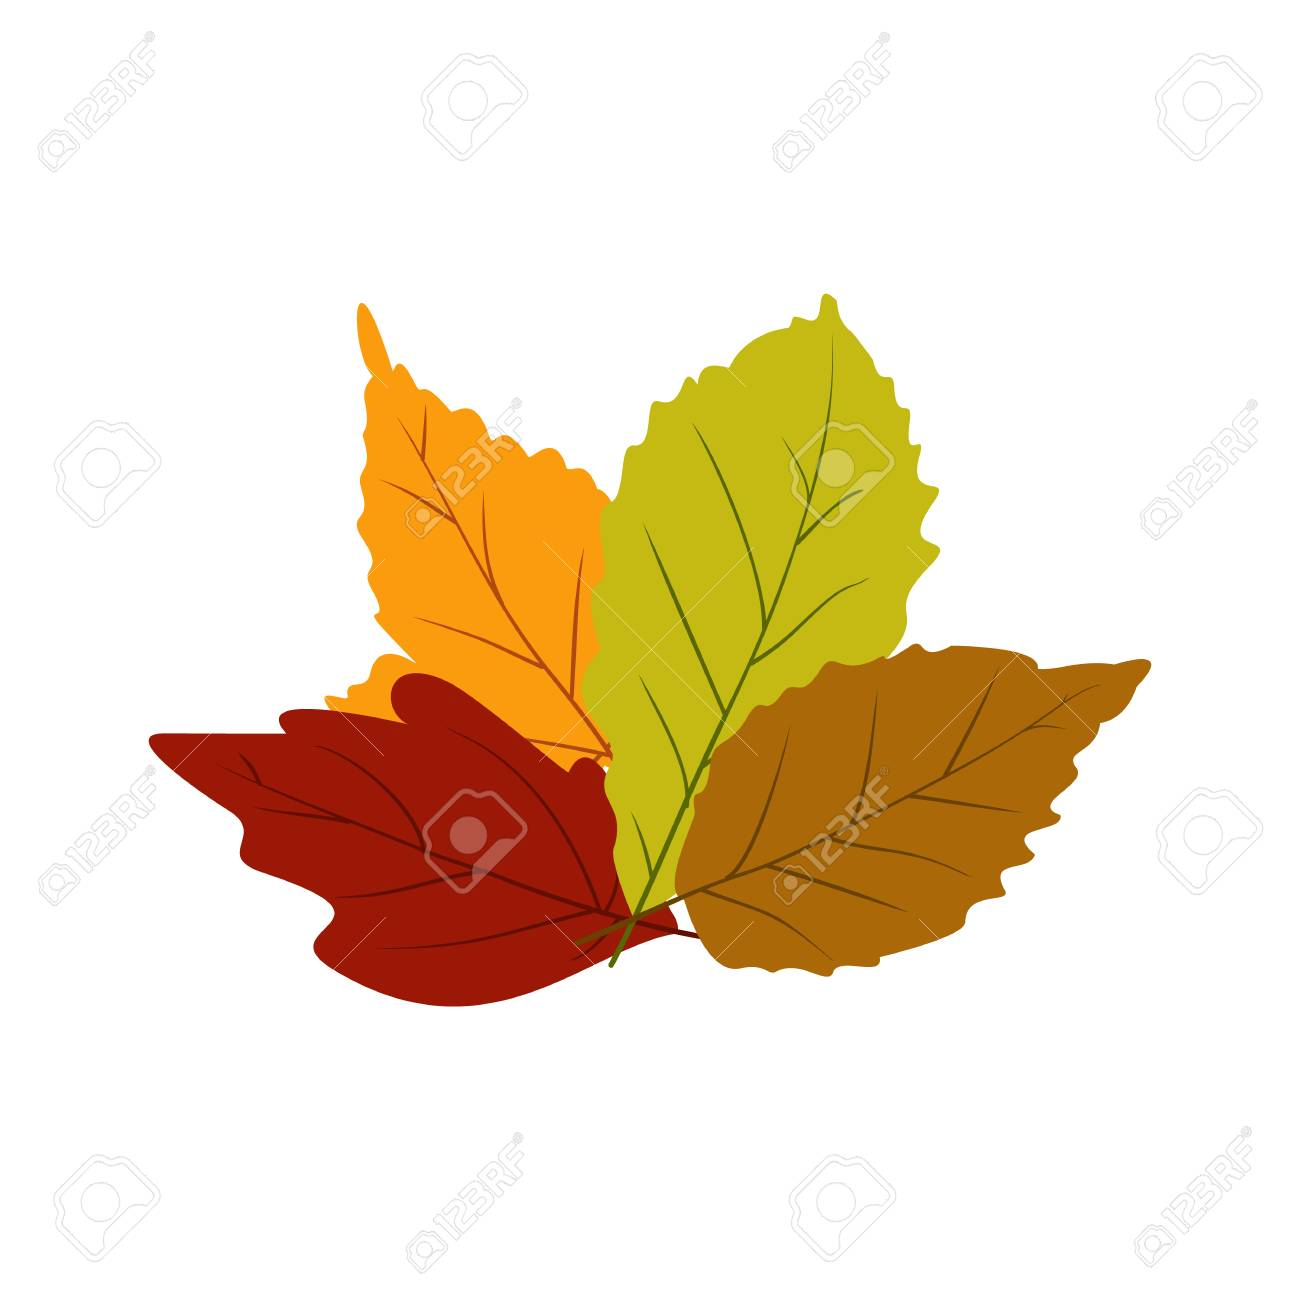 Autumn Leaves Icon In Flat Style Isolated On White Background Royalty Free Cliparts Vectors And Stock Illustration Image 54171736